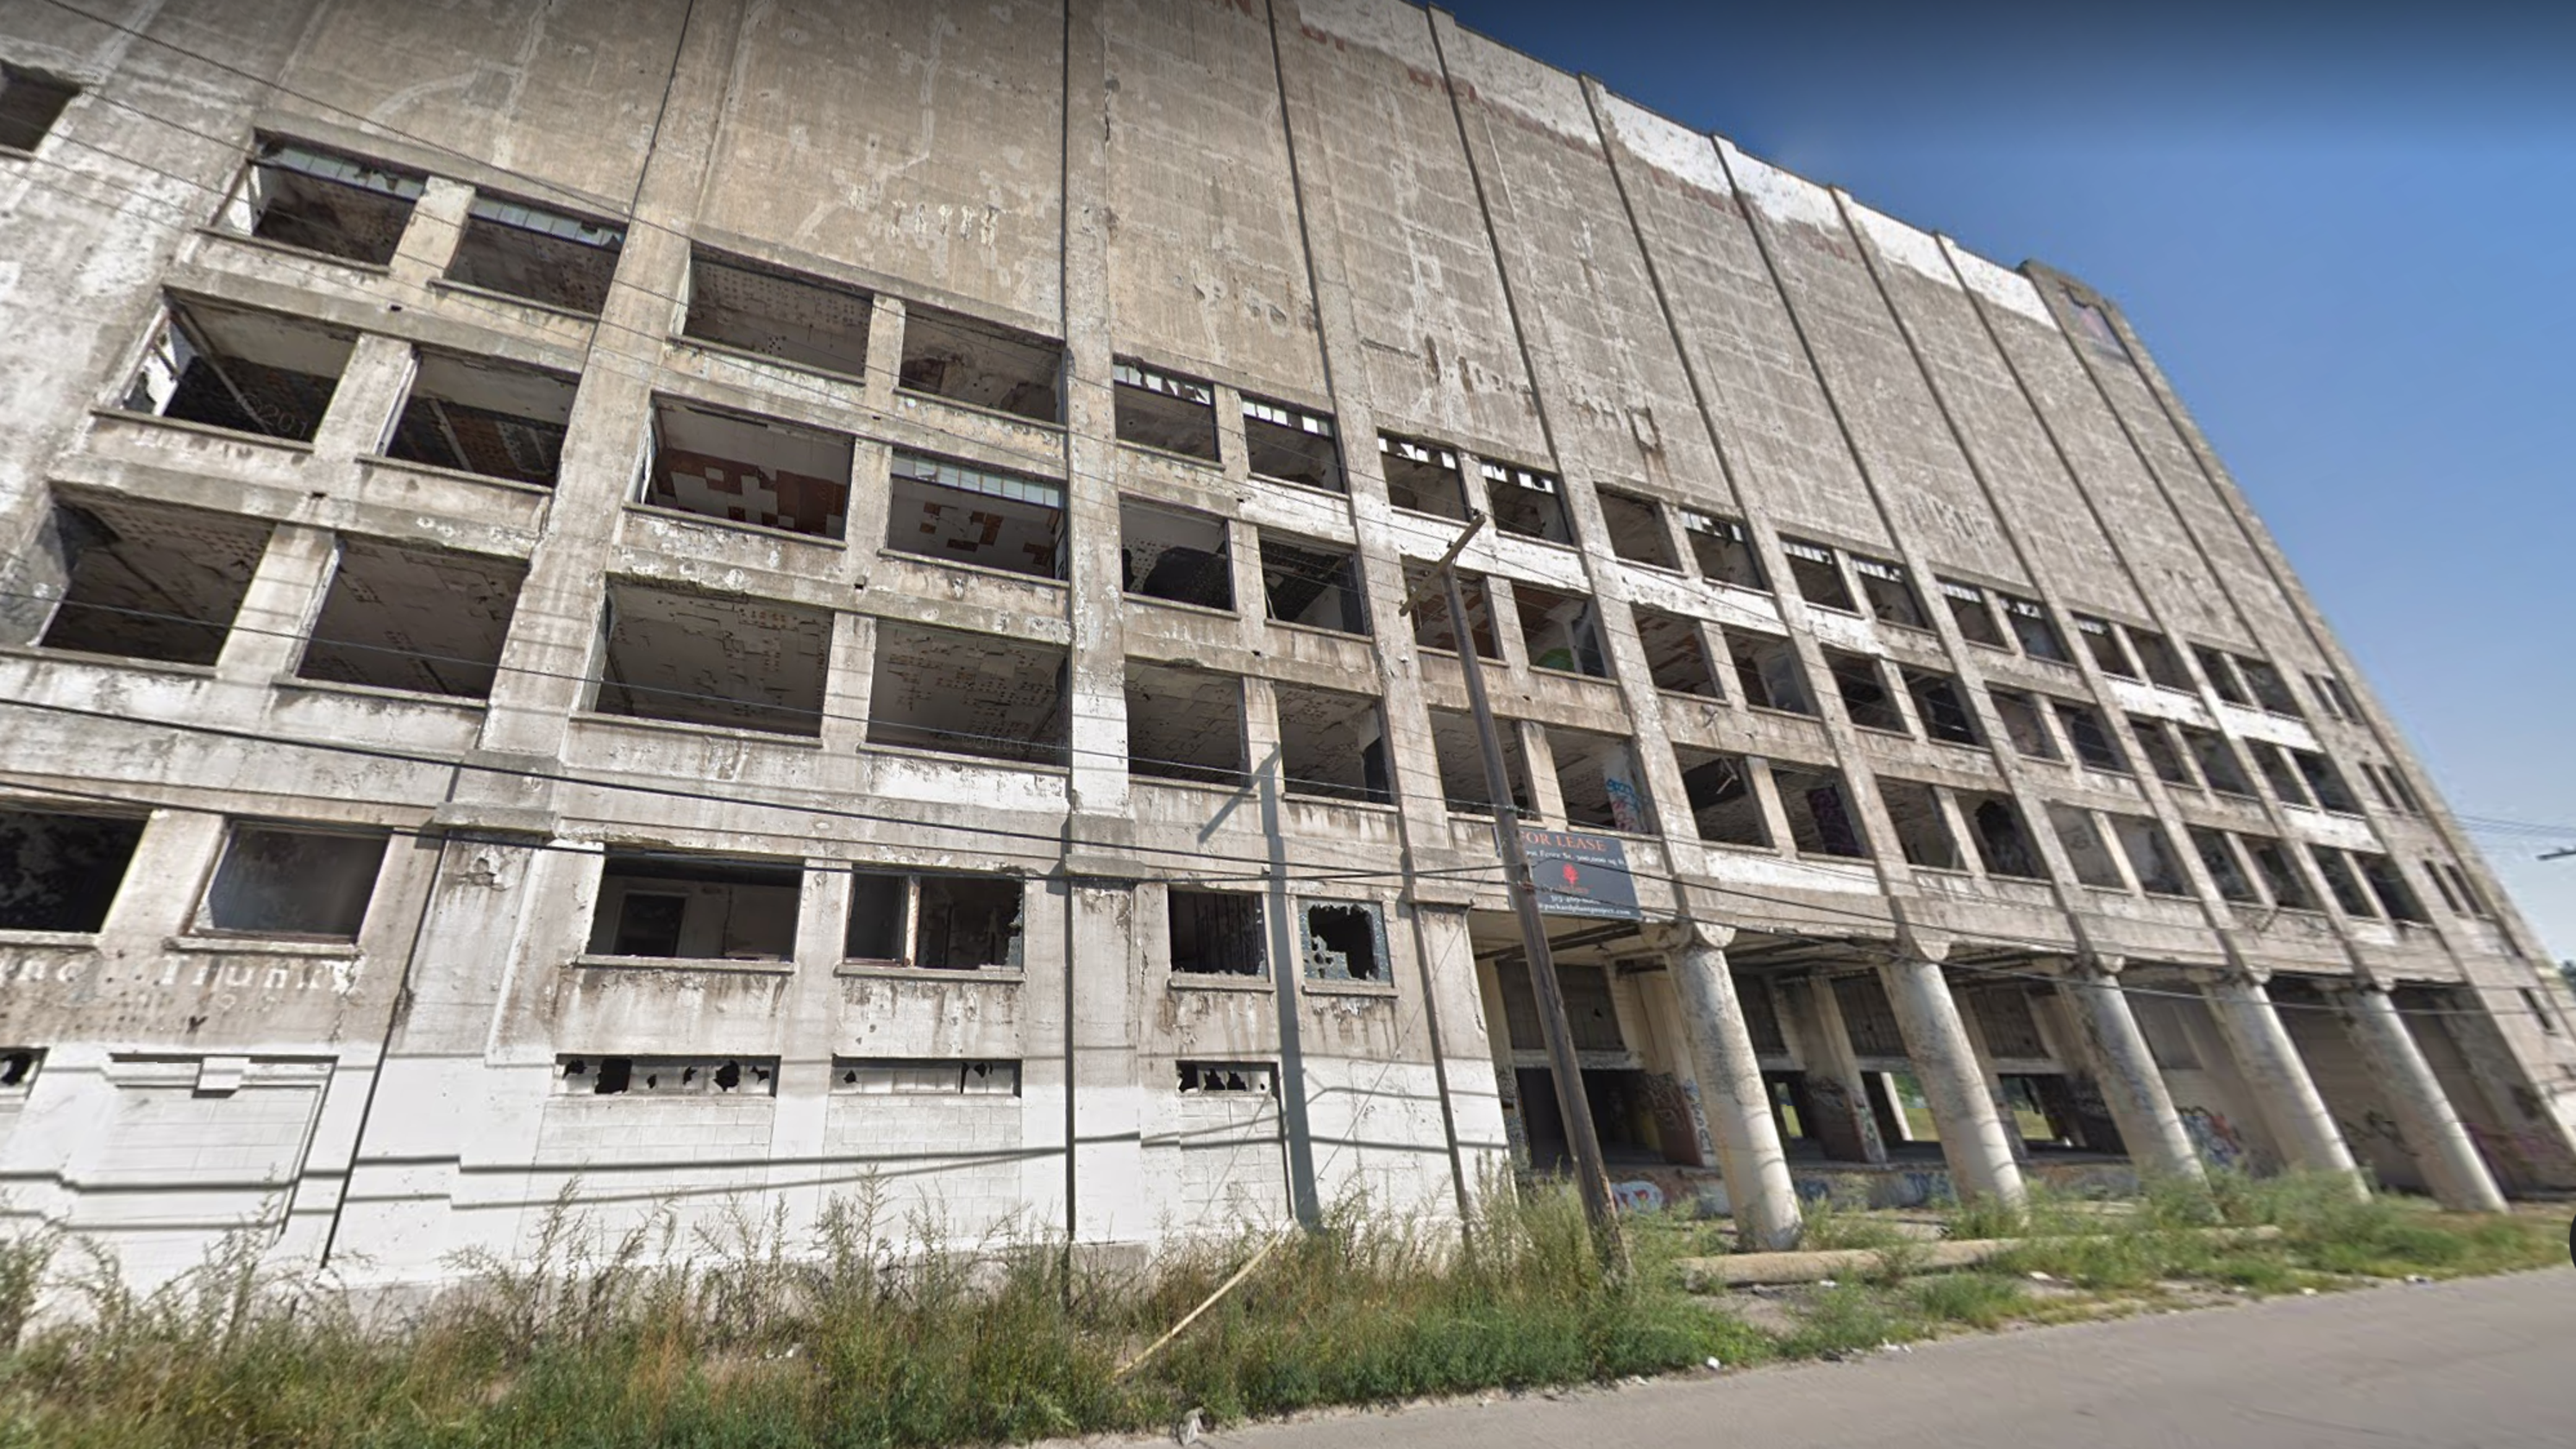 Fatal hide-and-seek accident not at Packard plant